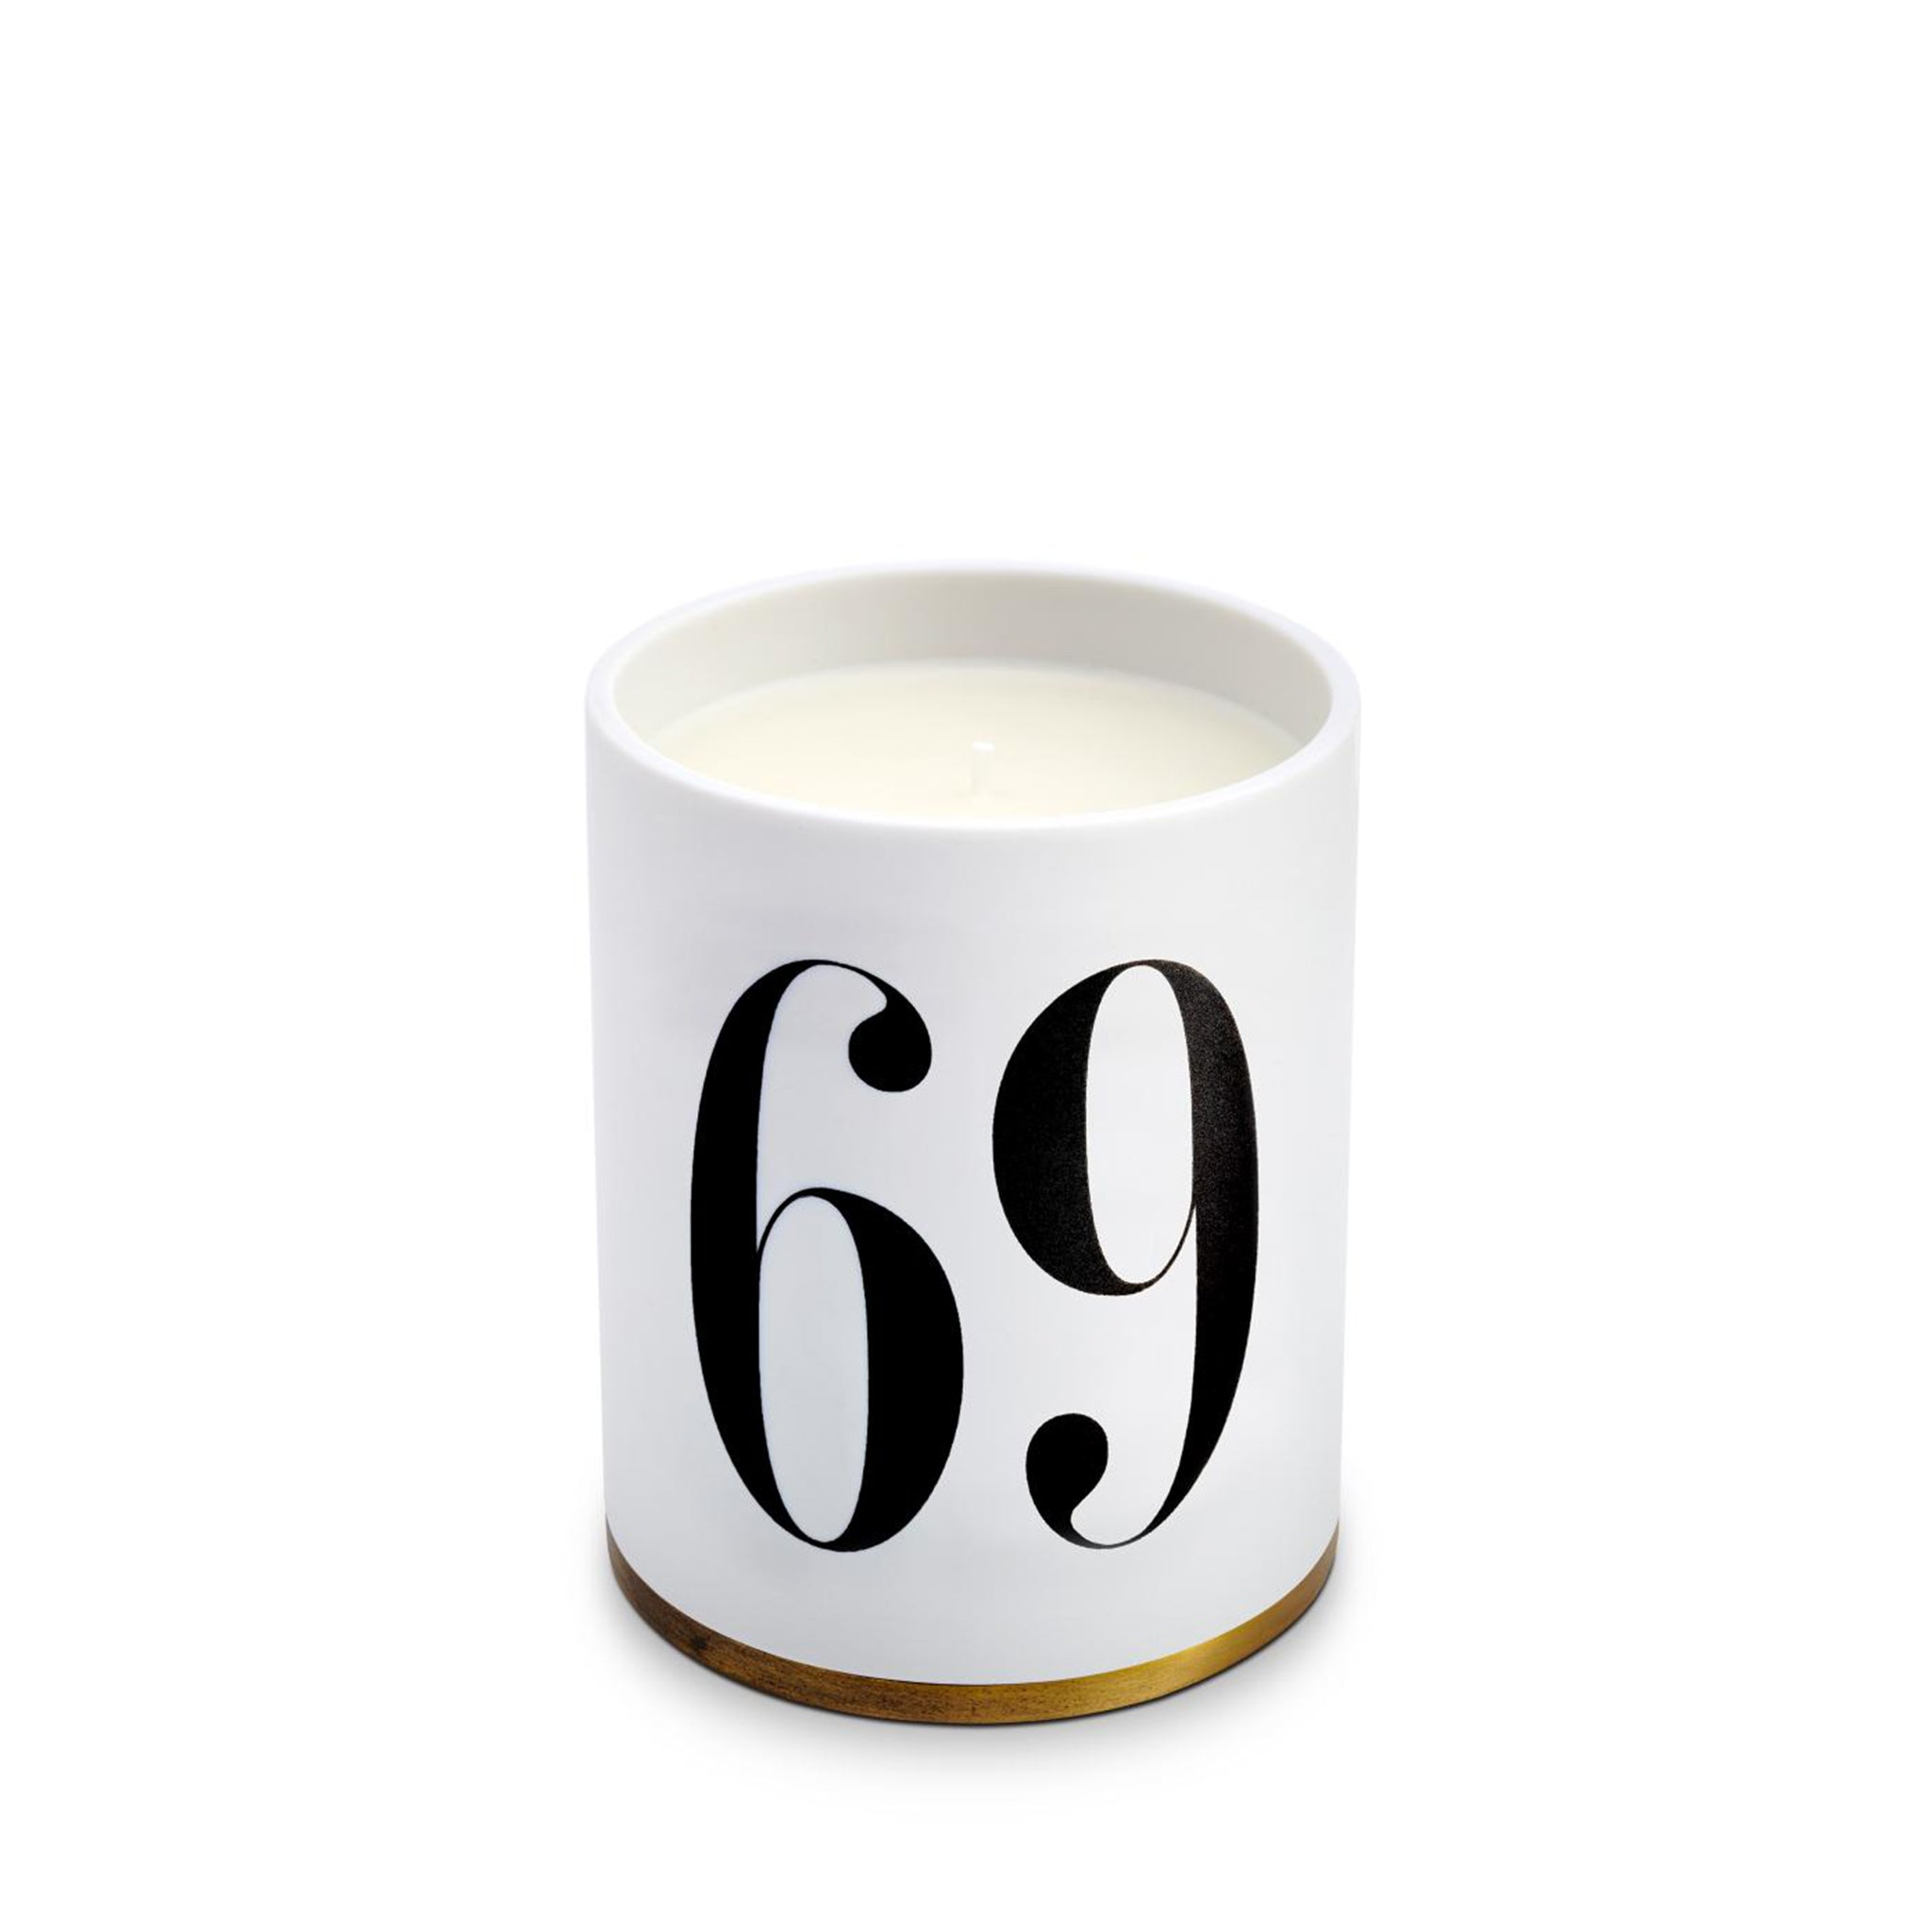 Oh Mon Dieu No.69 Candle